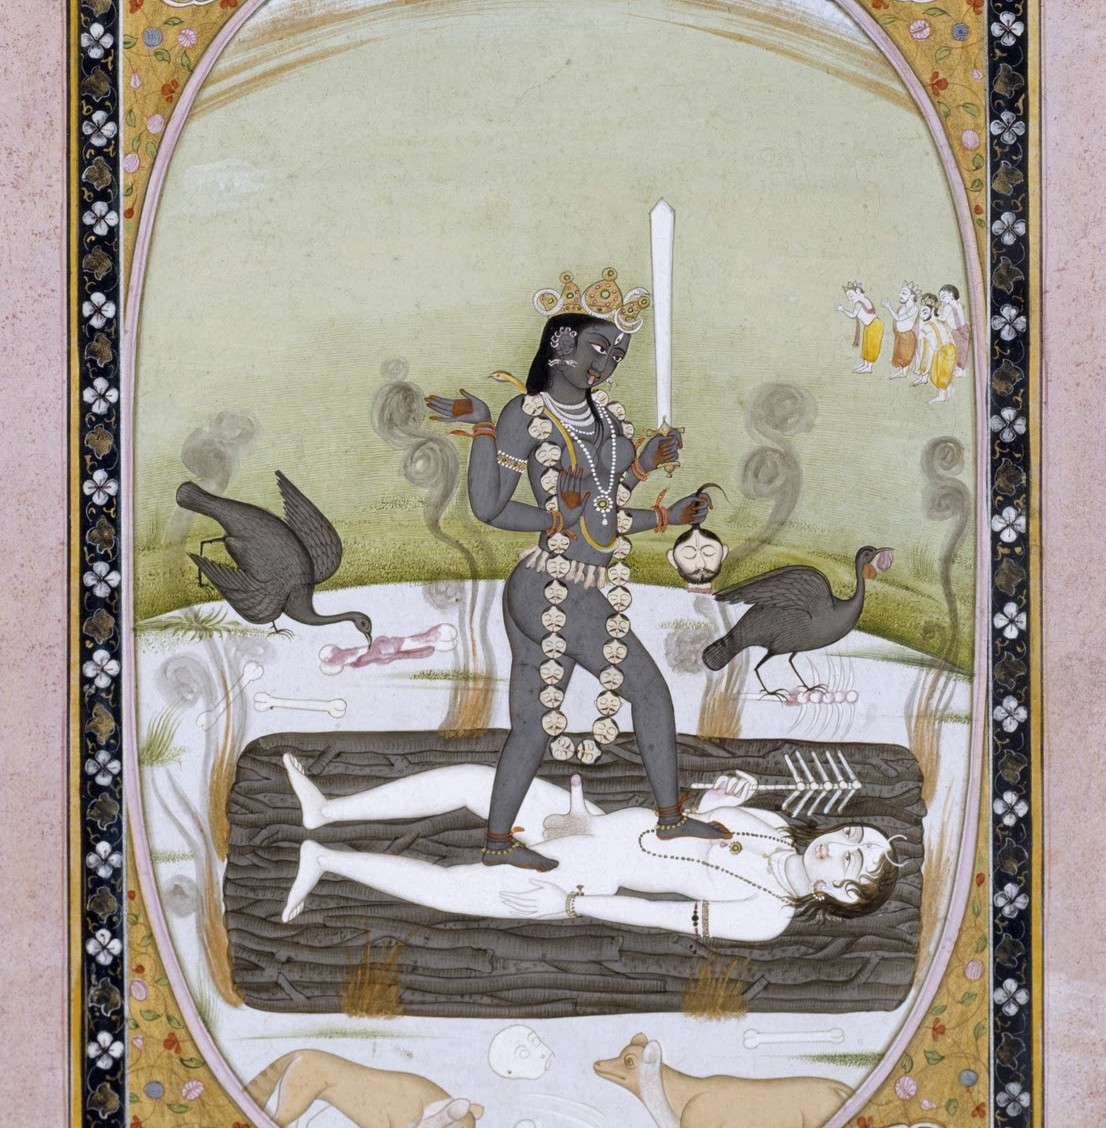 Goddess Kali on Shiva - Kangra Painting (1800 - 1825)